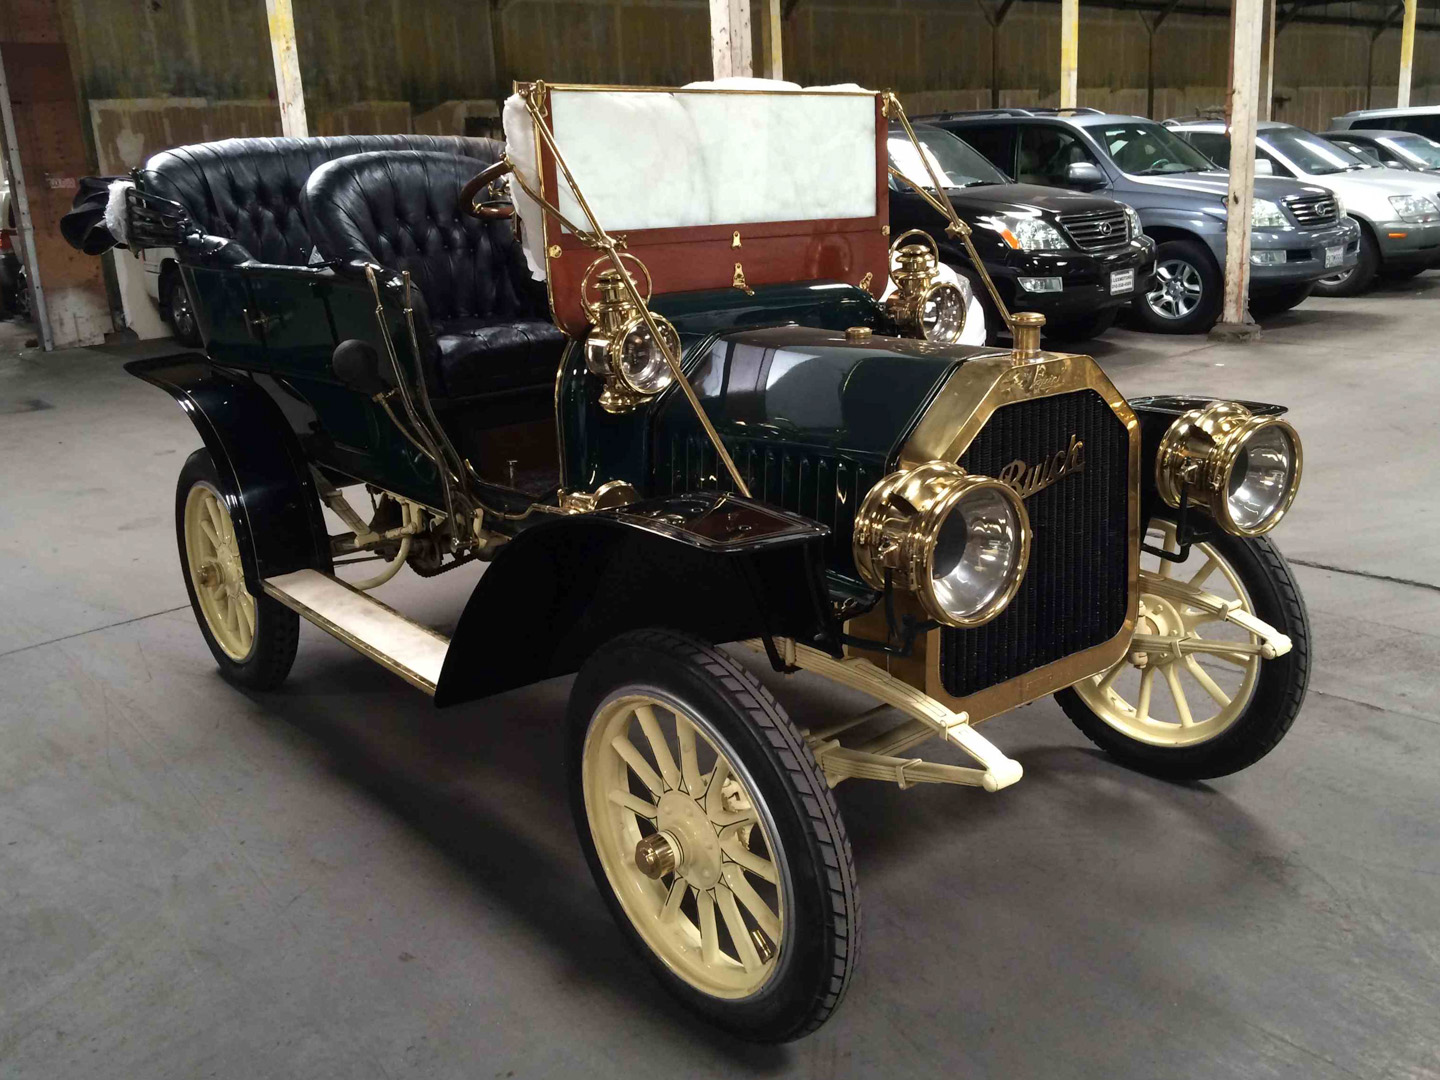 105-year-old Buick travels around the world without a scratch